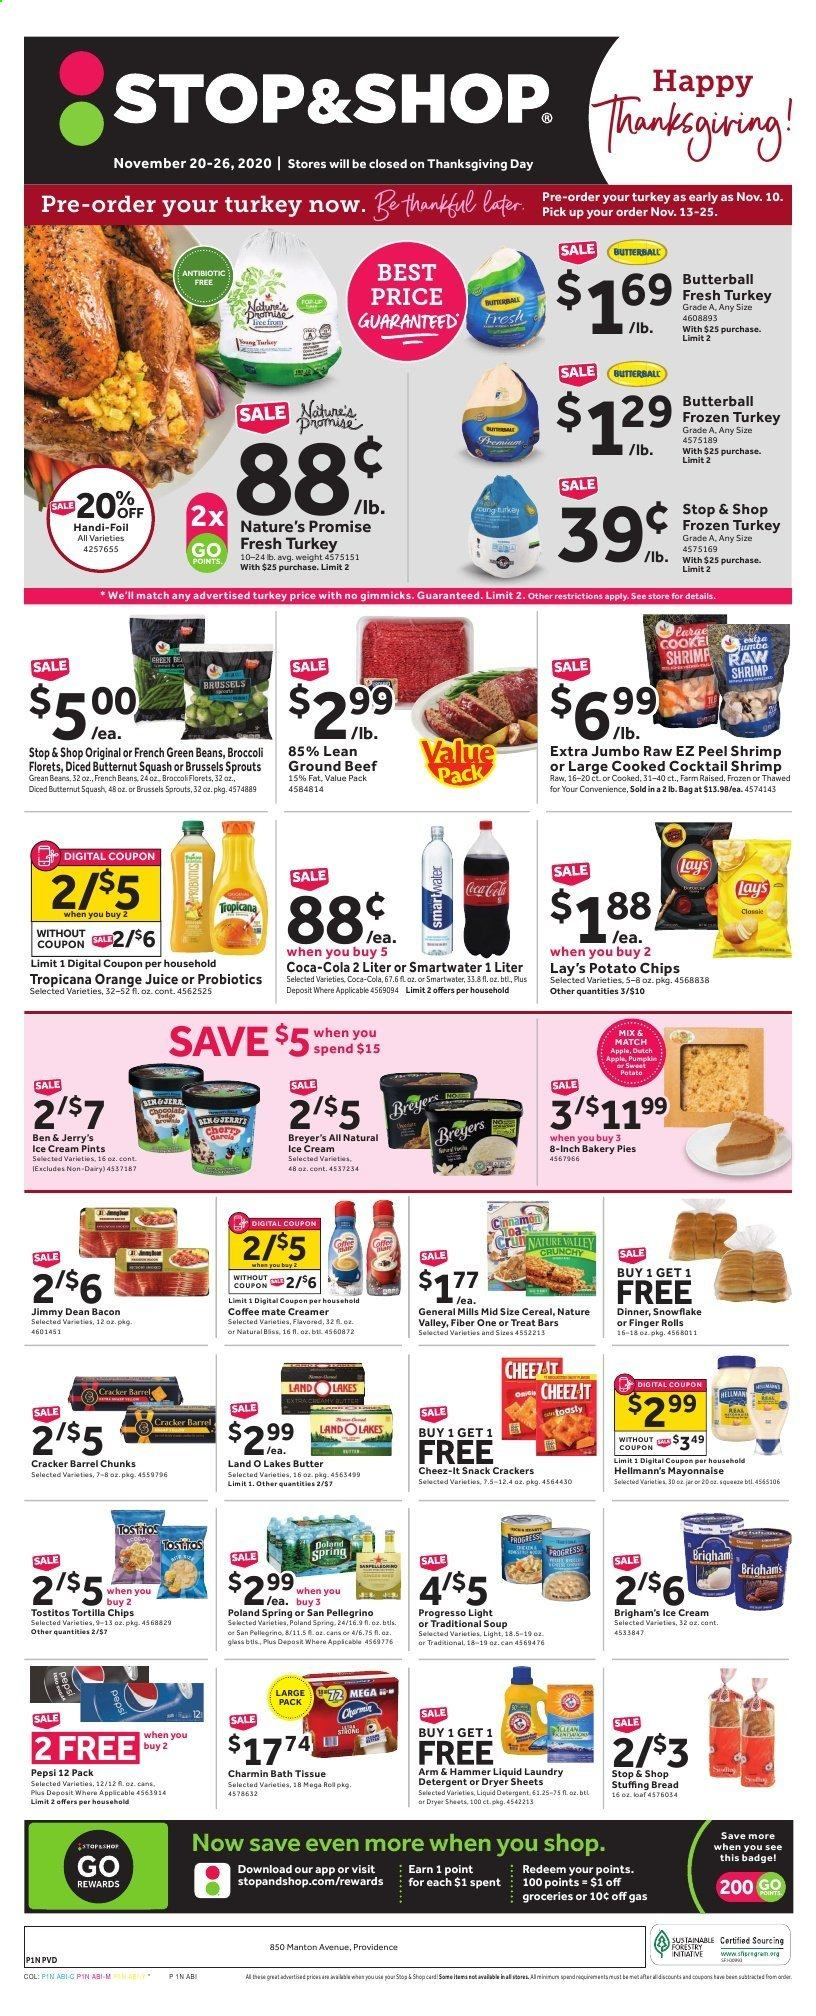 Stop & Shop Flyer - 11.20.2020 - 11.26.2020 - Sales products - apples, ARM & HAMMER, bacon, bag, bath tissue, beans, beef meat, bread, broccoli, brussels sprouts, Butterball, butternut squash, cereals, Coca-Cola, coffee, detergent, french beans, frozen turkey, green beans, ground beef, mayonnaise, snowflake, squash, sweet potatoes, tortilla chips, turkey, ice cream, jar, pin, potato chips, probiotics, pumpkin, Pepsi, orange juice, orange, chips, juice, soup, creamer, snack, hammer, AVG, Breyer, Lay's, cracker, liquid detergent, laundry detergent, Apple, shrimps, spring. Page 1.